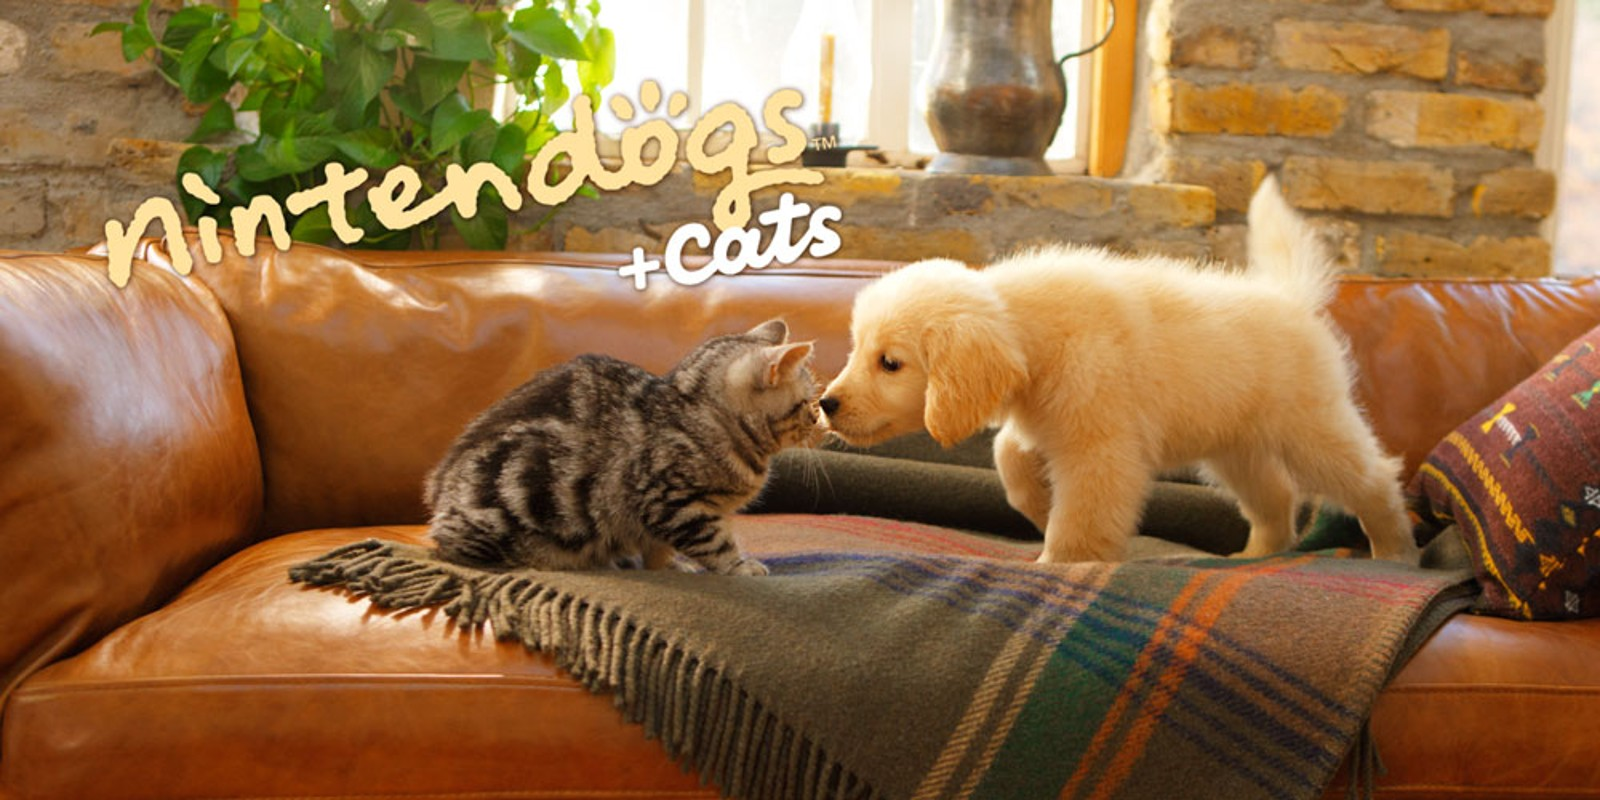 nintendogs + cats: Golden Retriever & neue Freunde